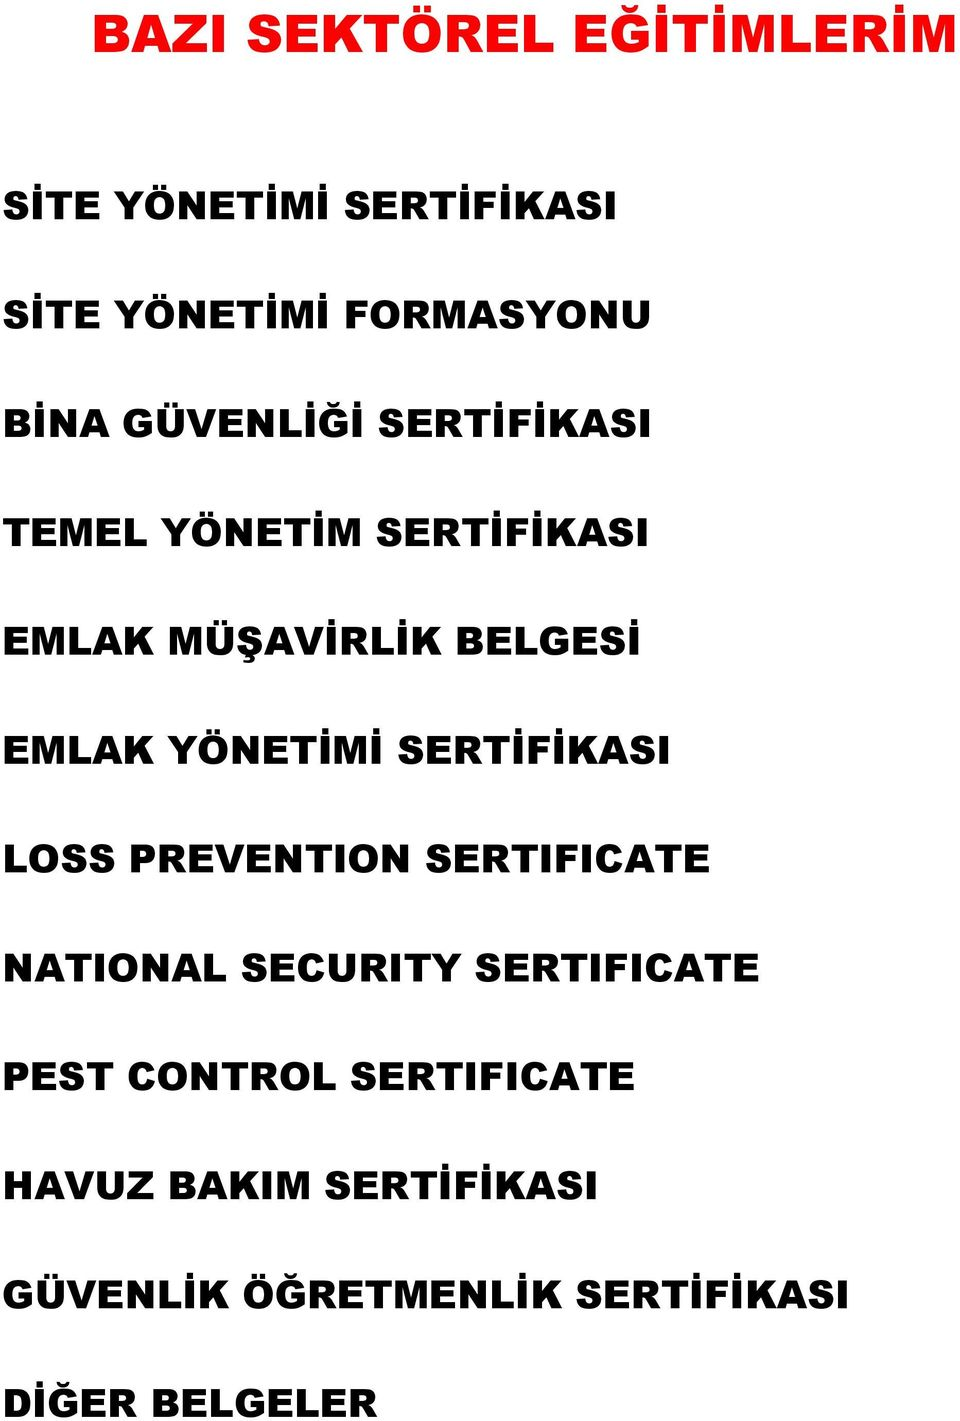 YÖNETİMİ SERTİFİKASI LOSS PREVENTION SERTIFICATE NATIONAL SECURITY SERTIFICATE PEST